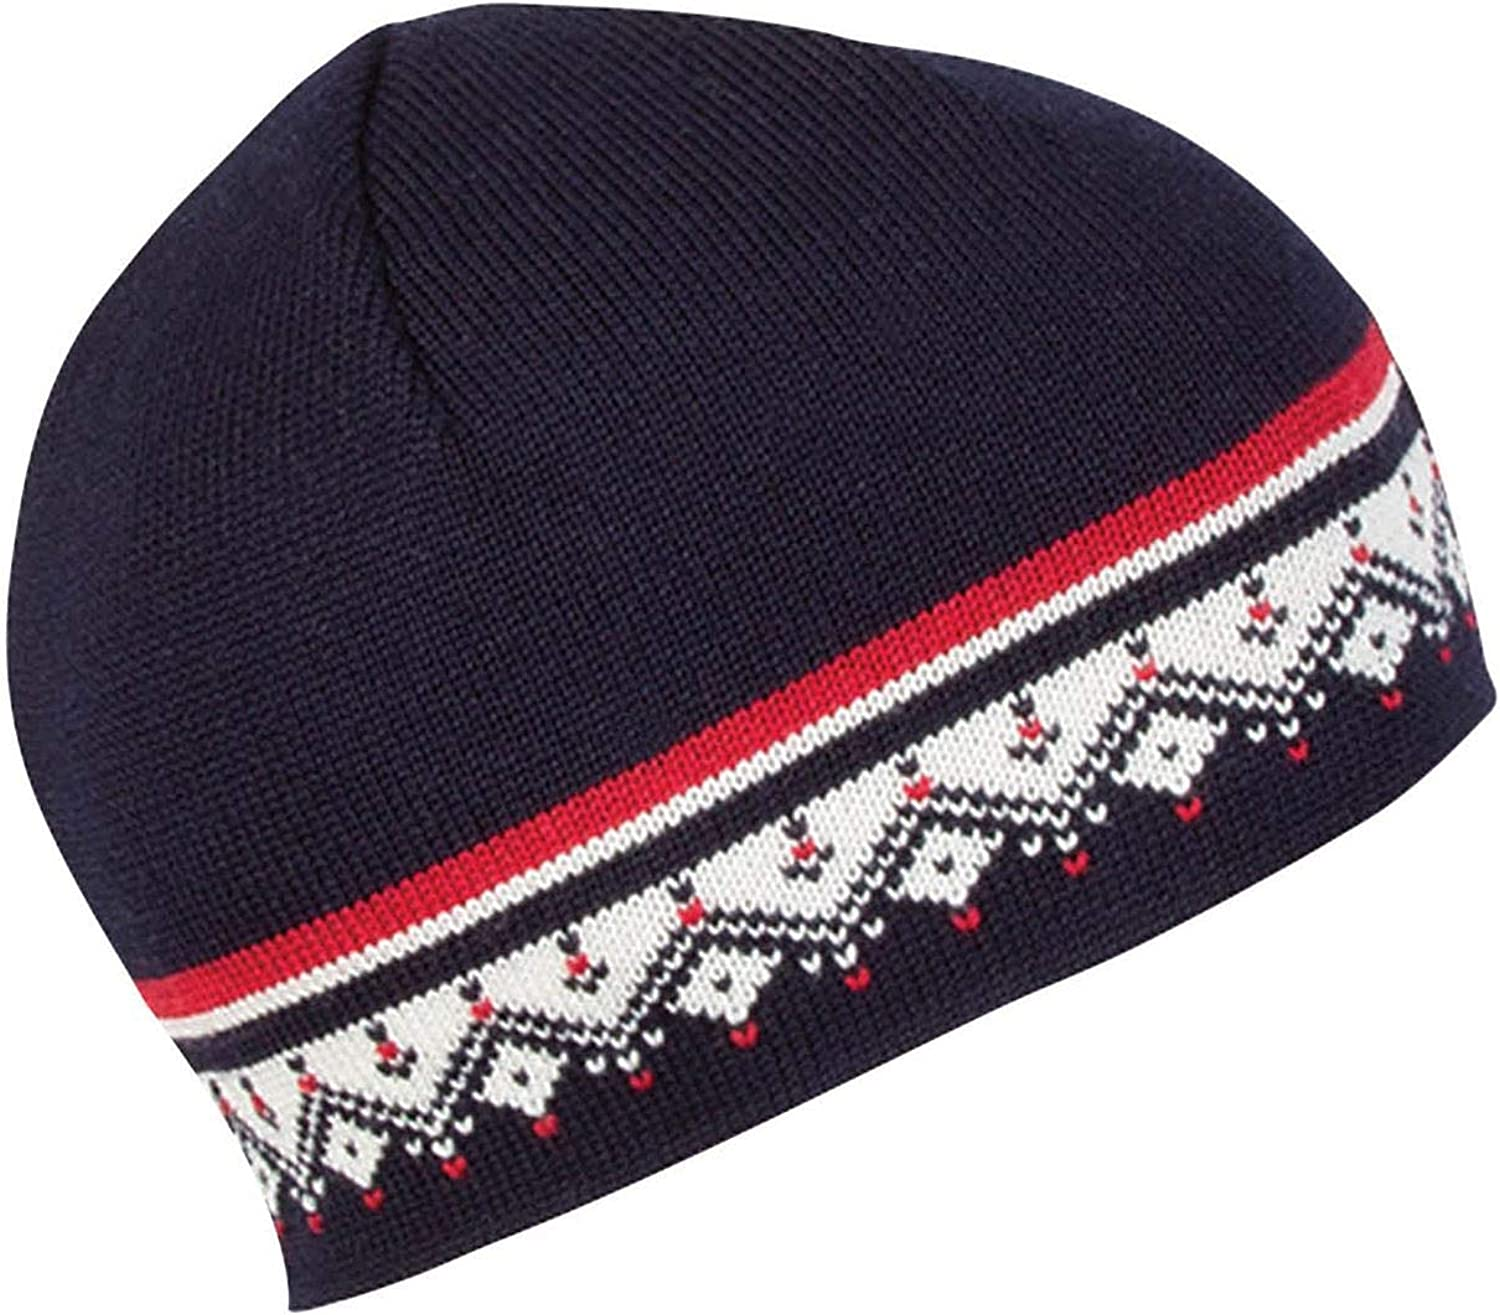 Sale SALE% OFF Dale of Norway Moritz Hat Industry No. 1 Off-White Navy Size Raspberry One